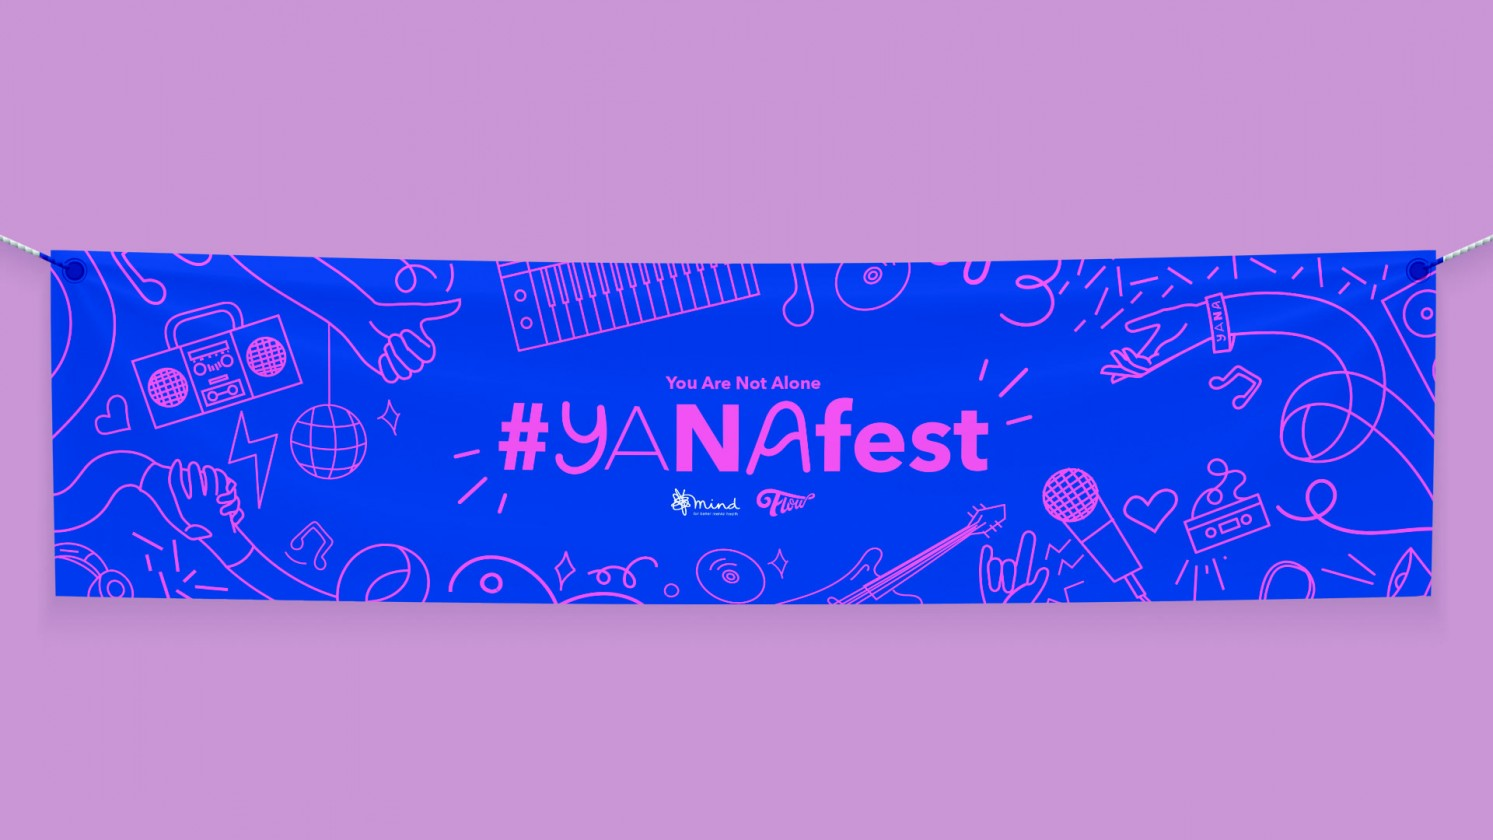 Yana illustrated and designed event banner